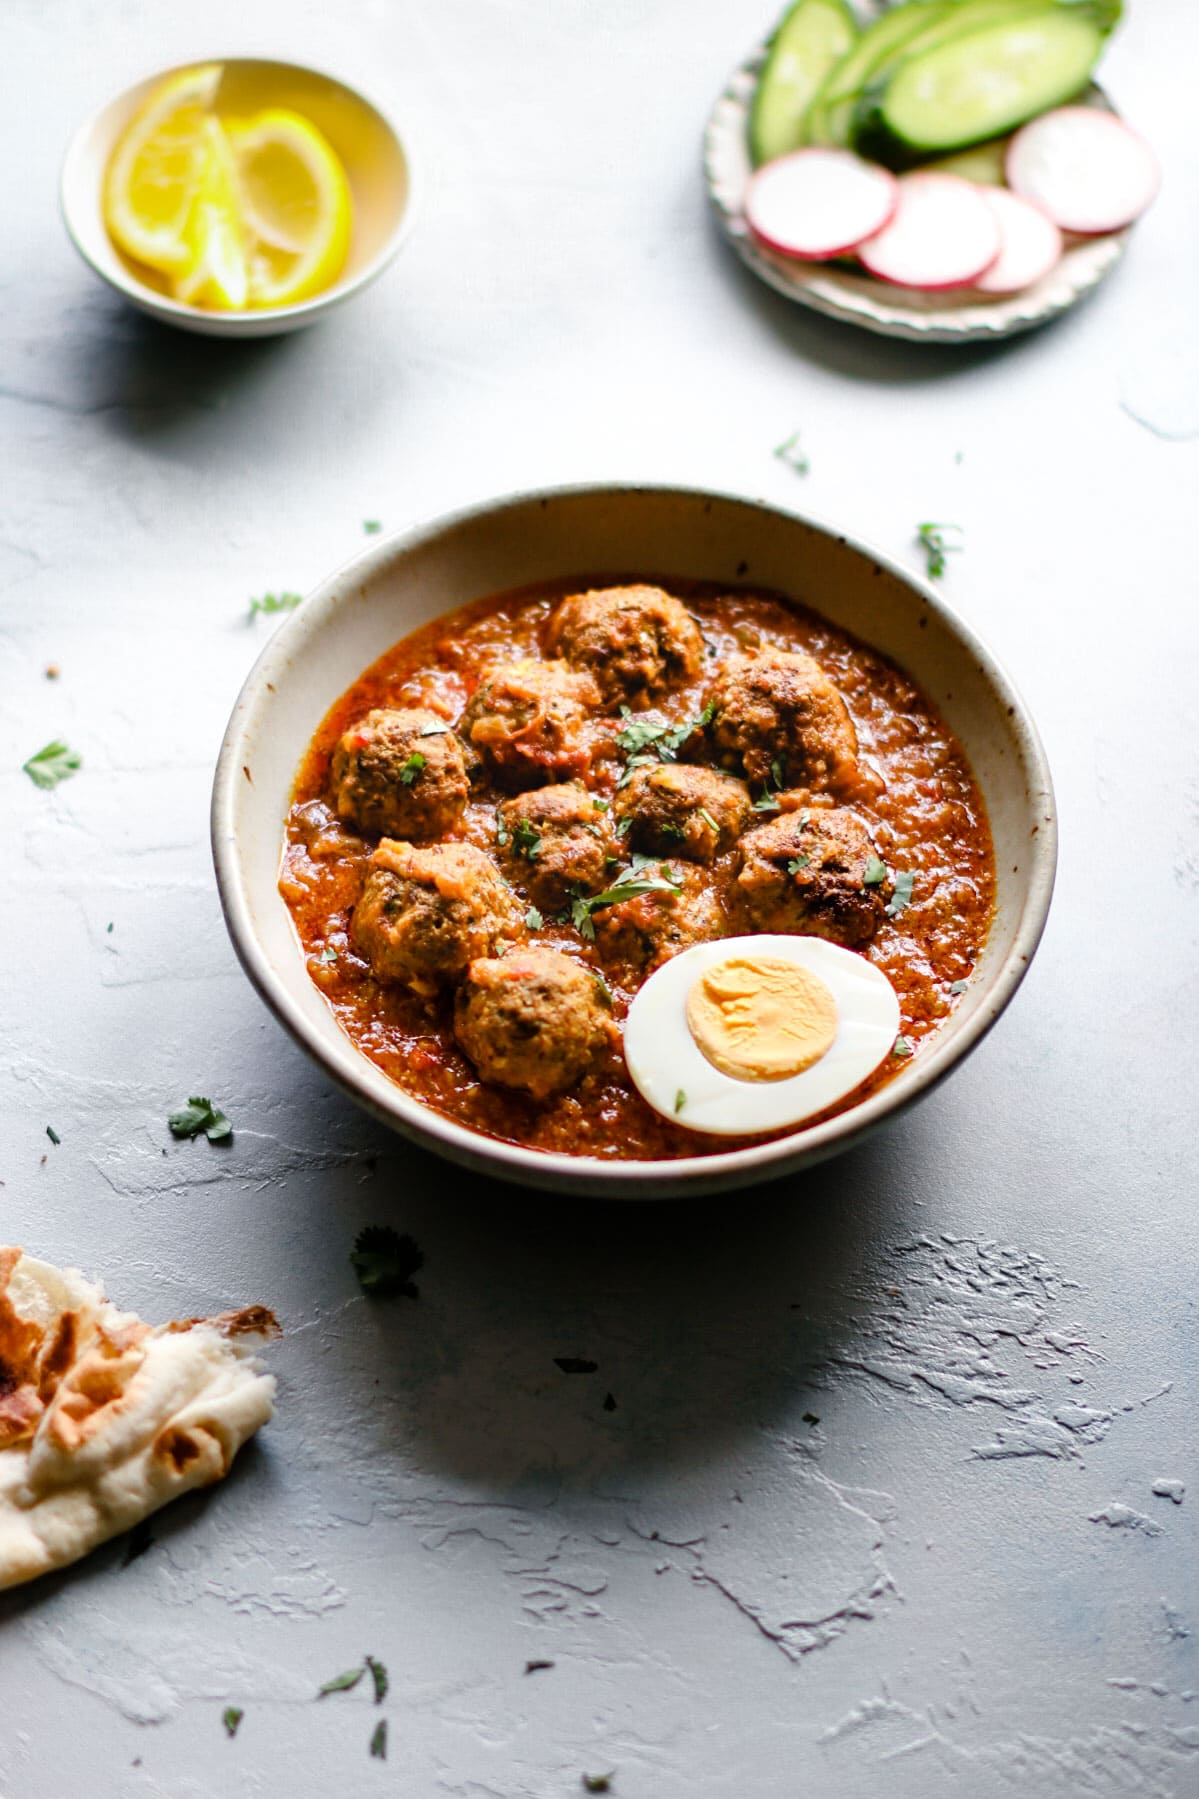 A bowl of  Pakistani Beef Kofta Curry garnished with half a hard boiled egg and cilantro.